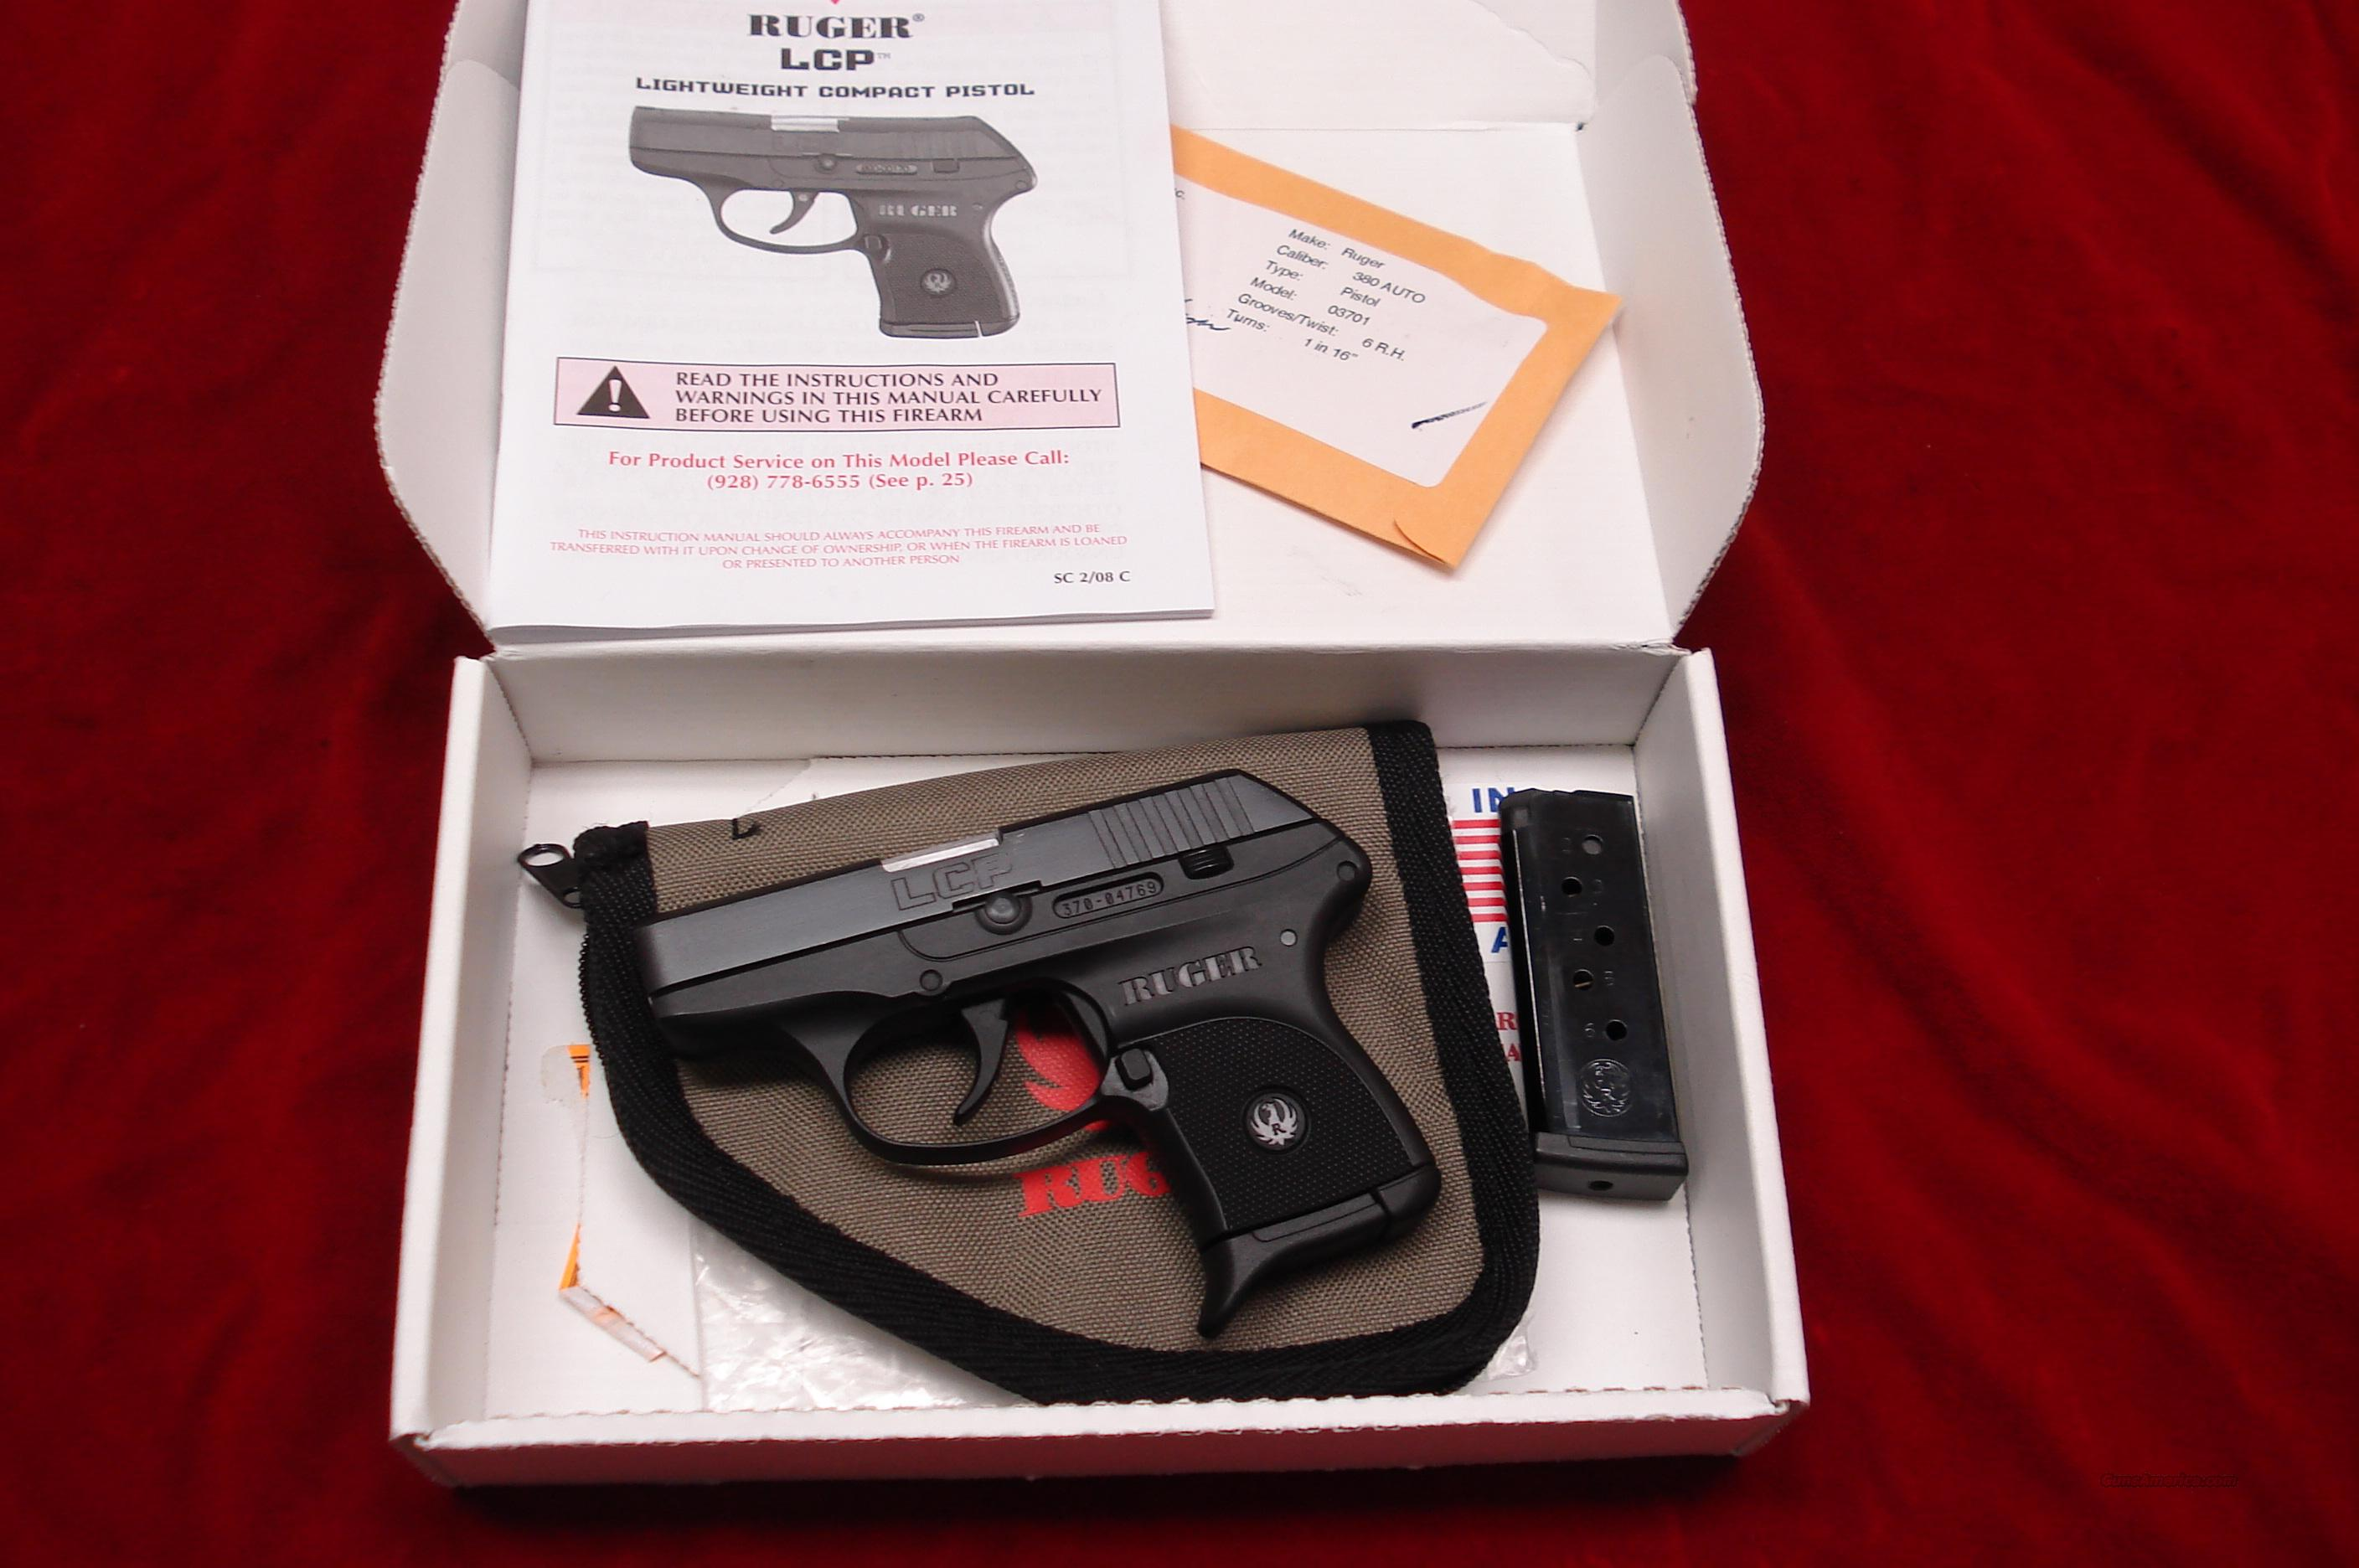 RUGER LCP  (Lightweight Compact Pistol) 380CAL. LNIB  Guns > Pistols > Ruger Semi-Auto Pistols > LCP